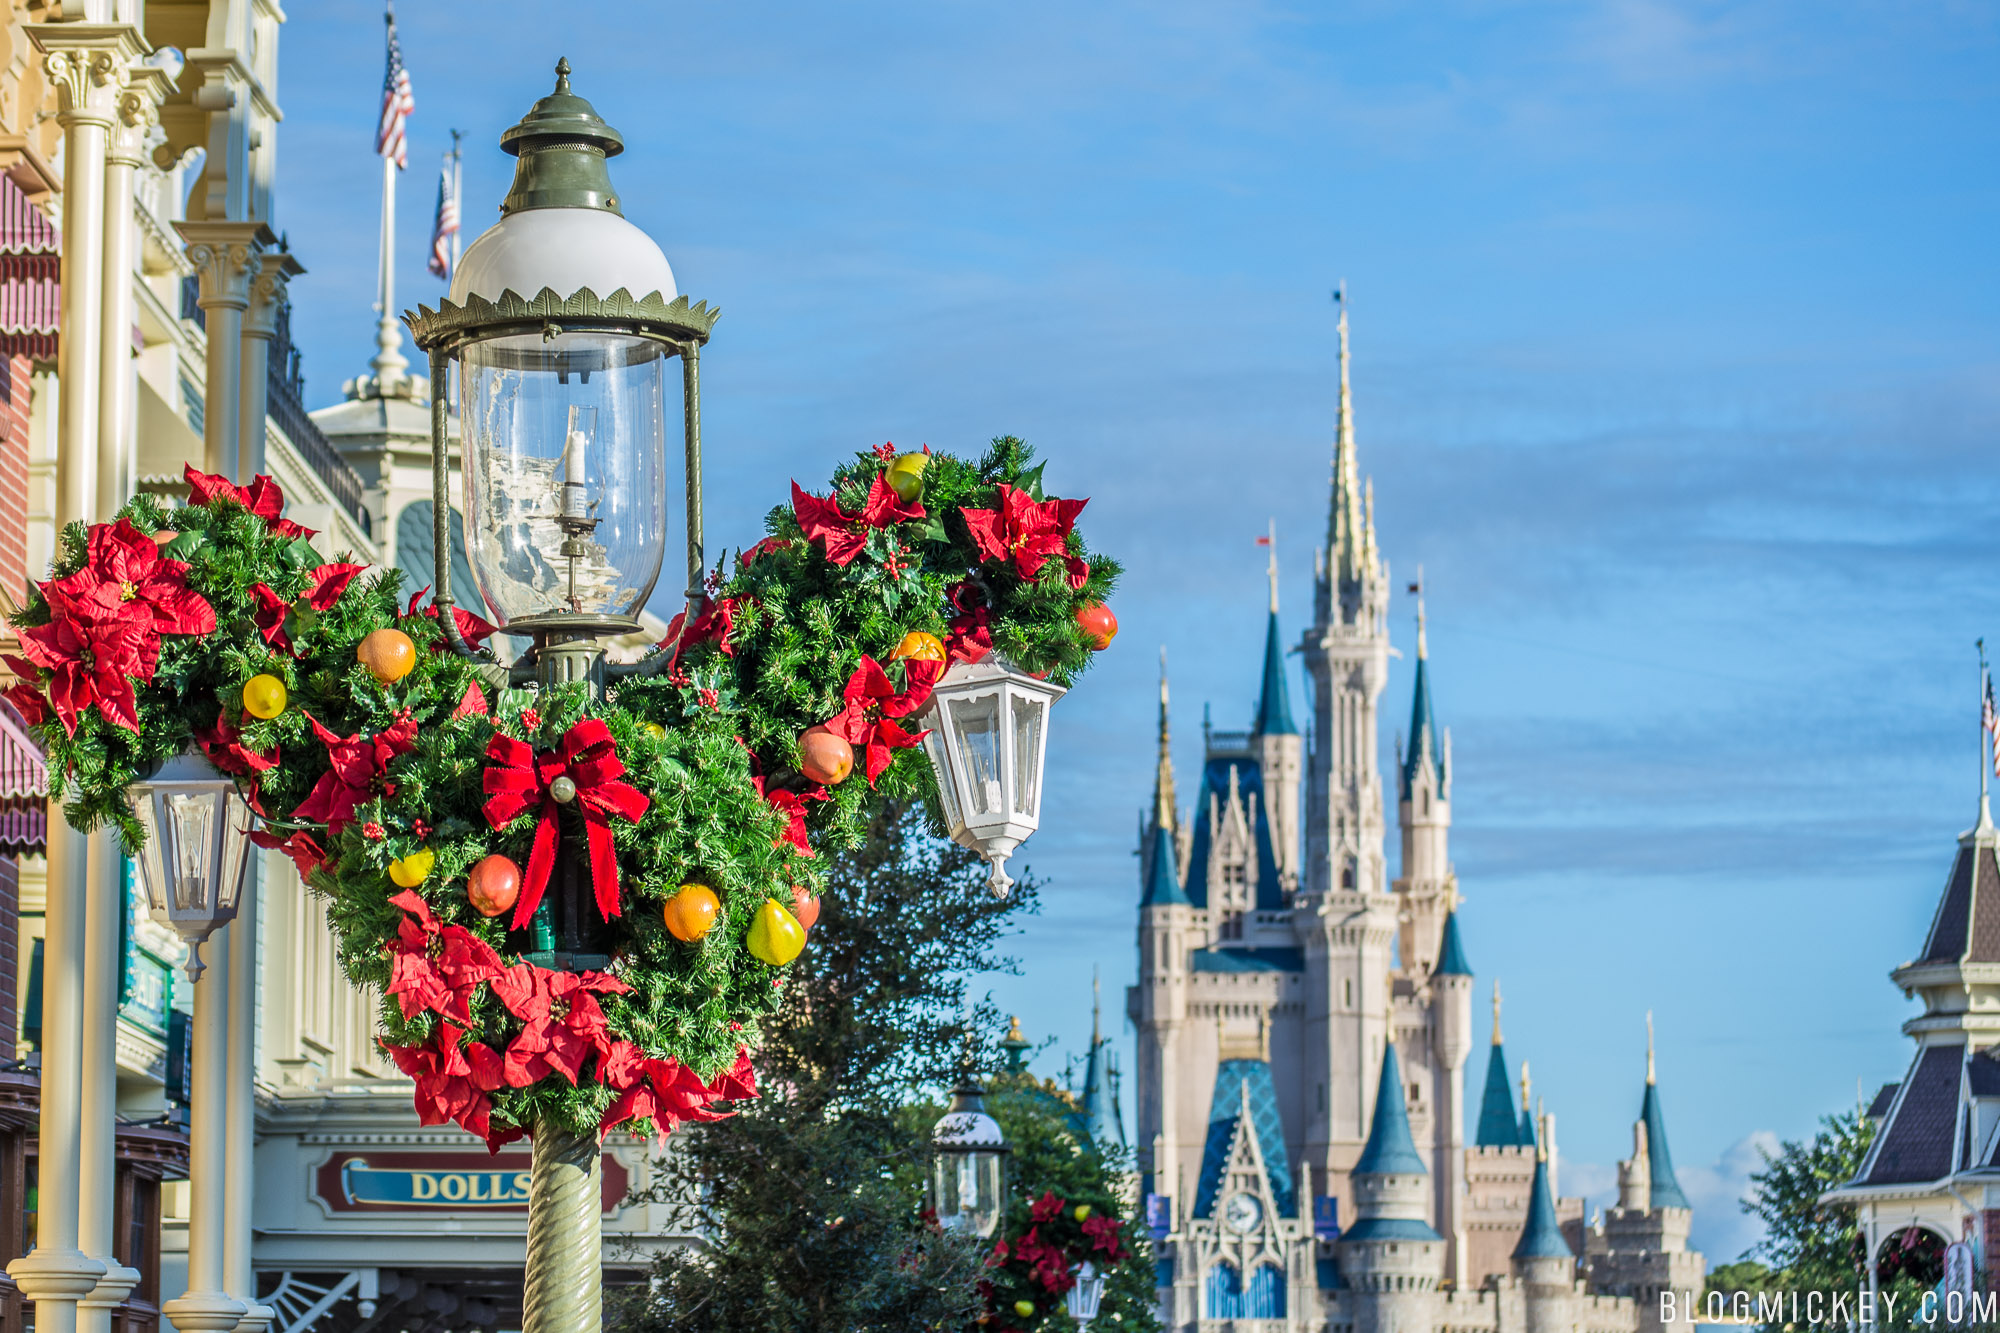 a day after the final not so scary halloween party concluded main street usa is getting in the christmas spirit with some decorations and music - Disney World Christmas Decorations 2017